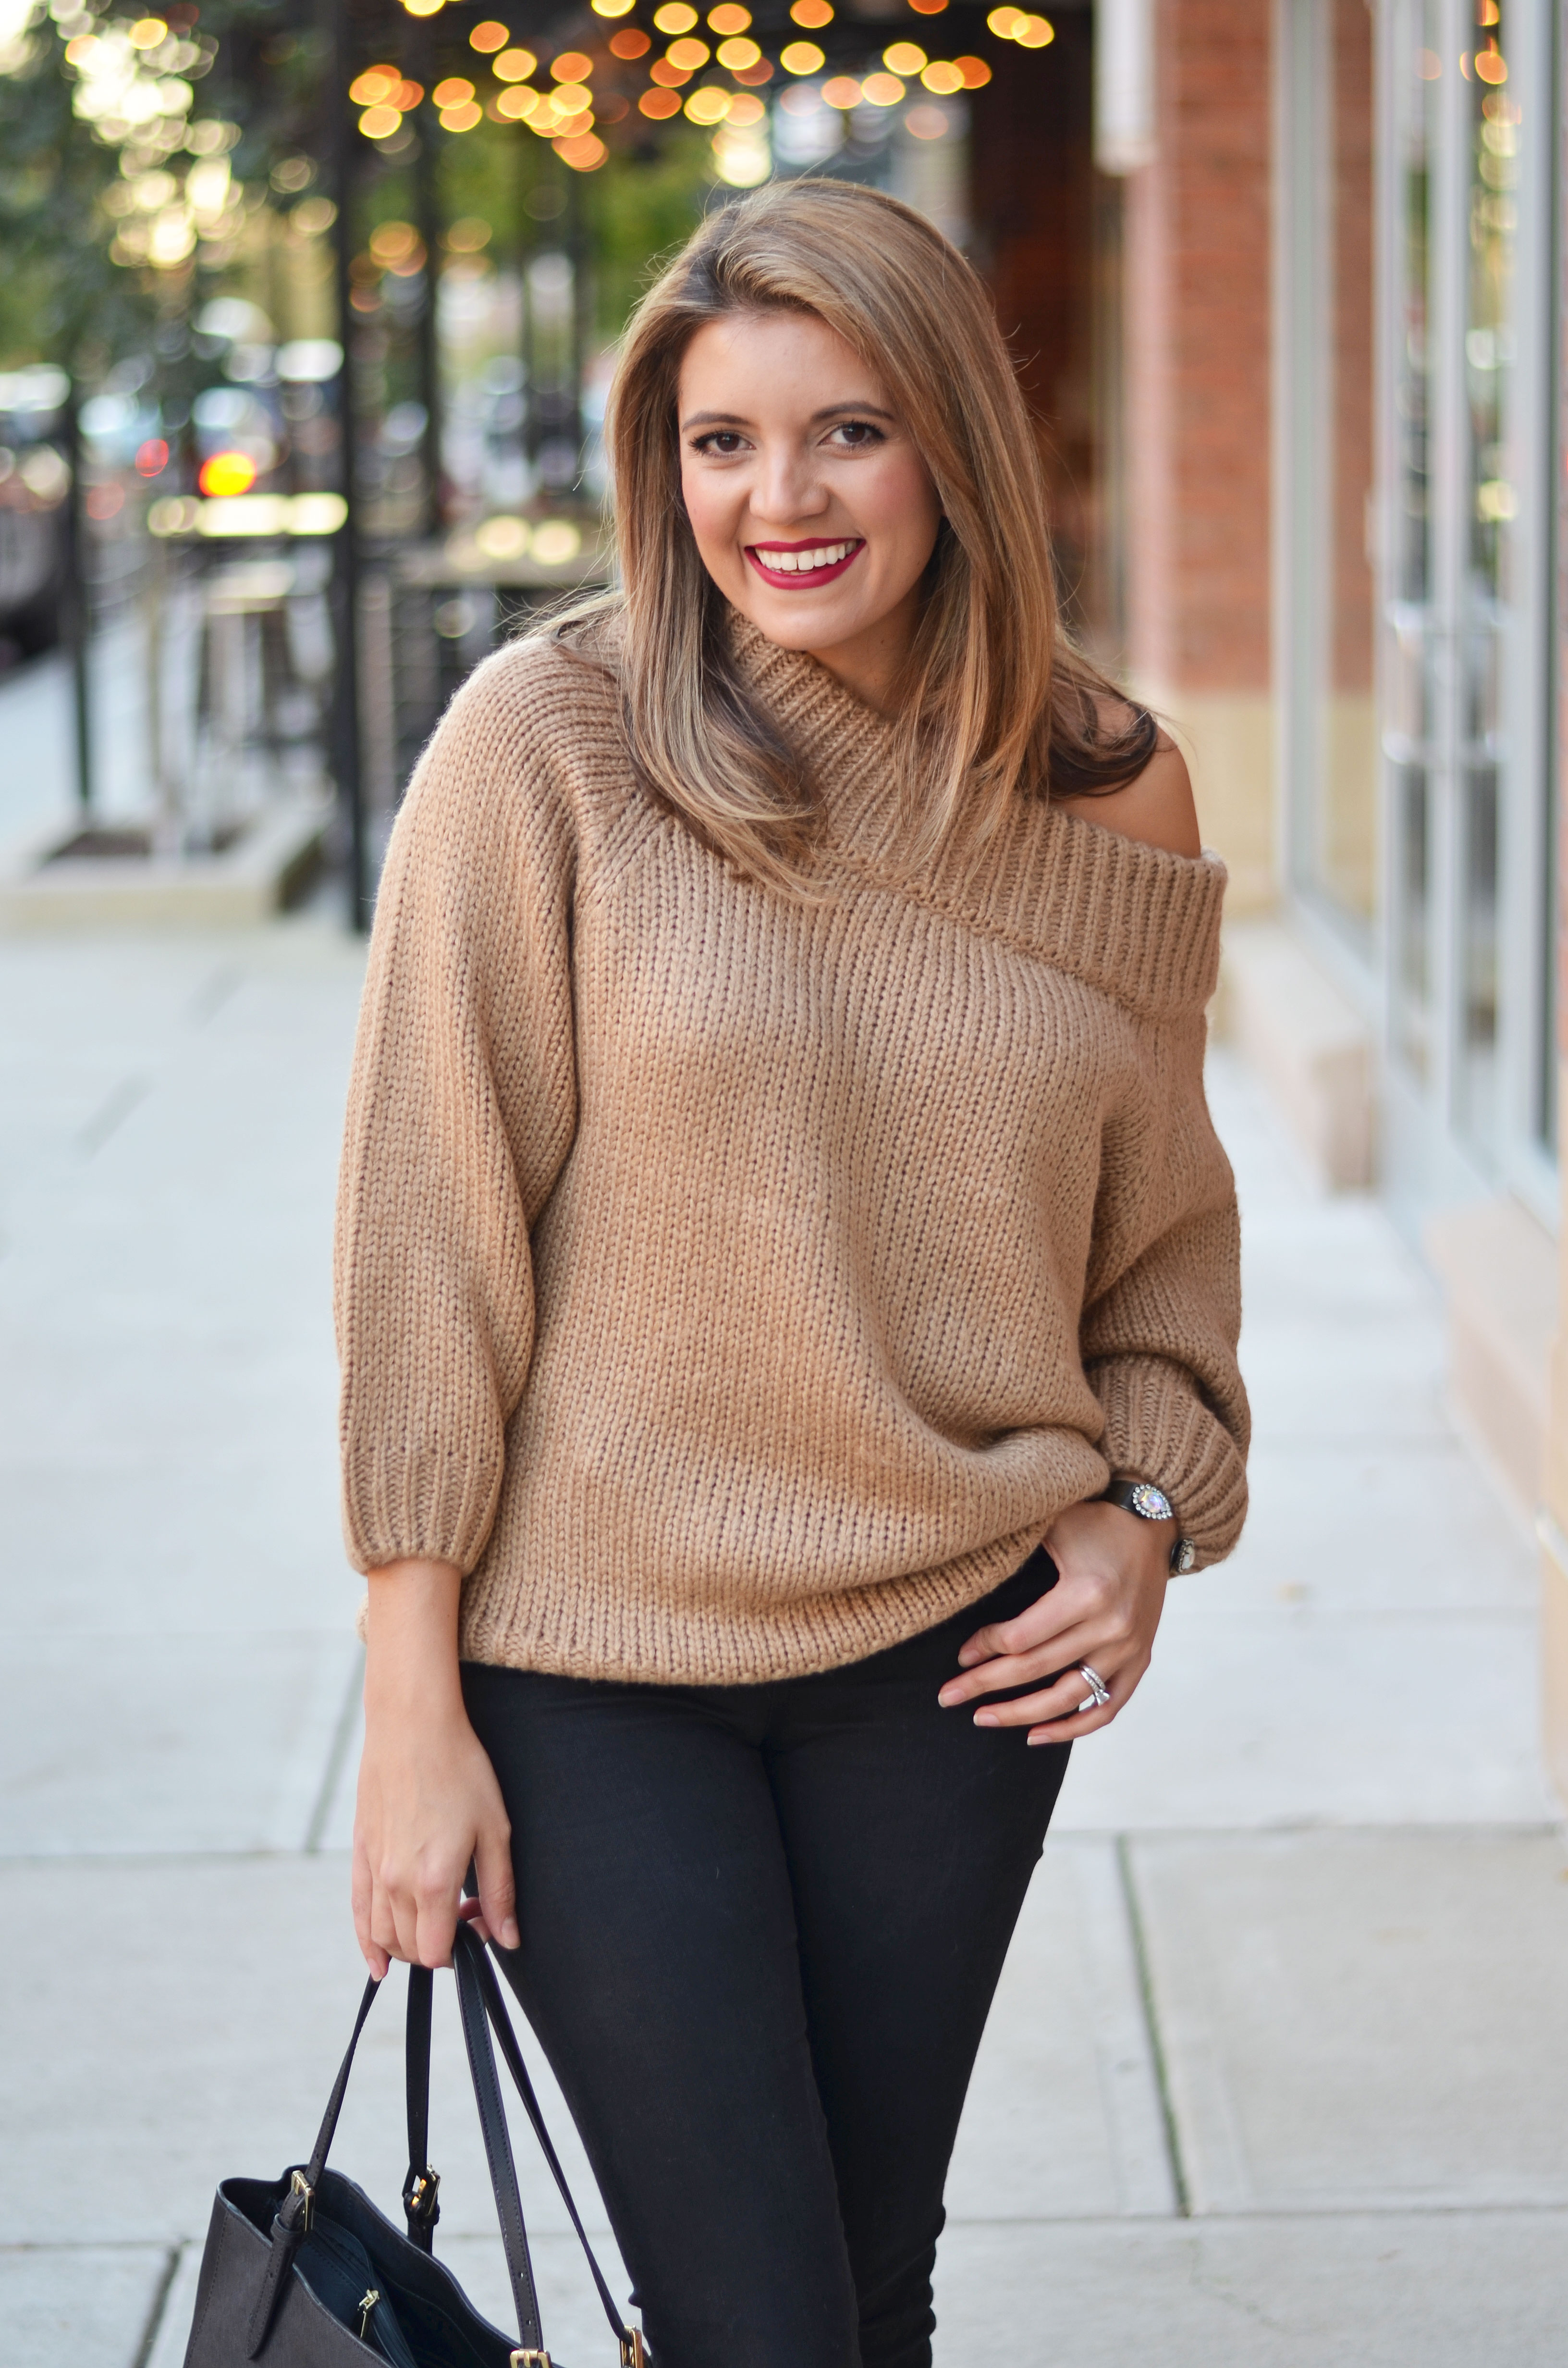 black and camel outfit - camel off shoulder sweater with black skinny jeans outfit | www.bylaurenm.com